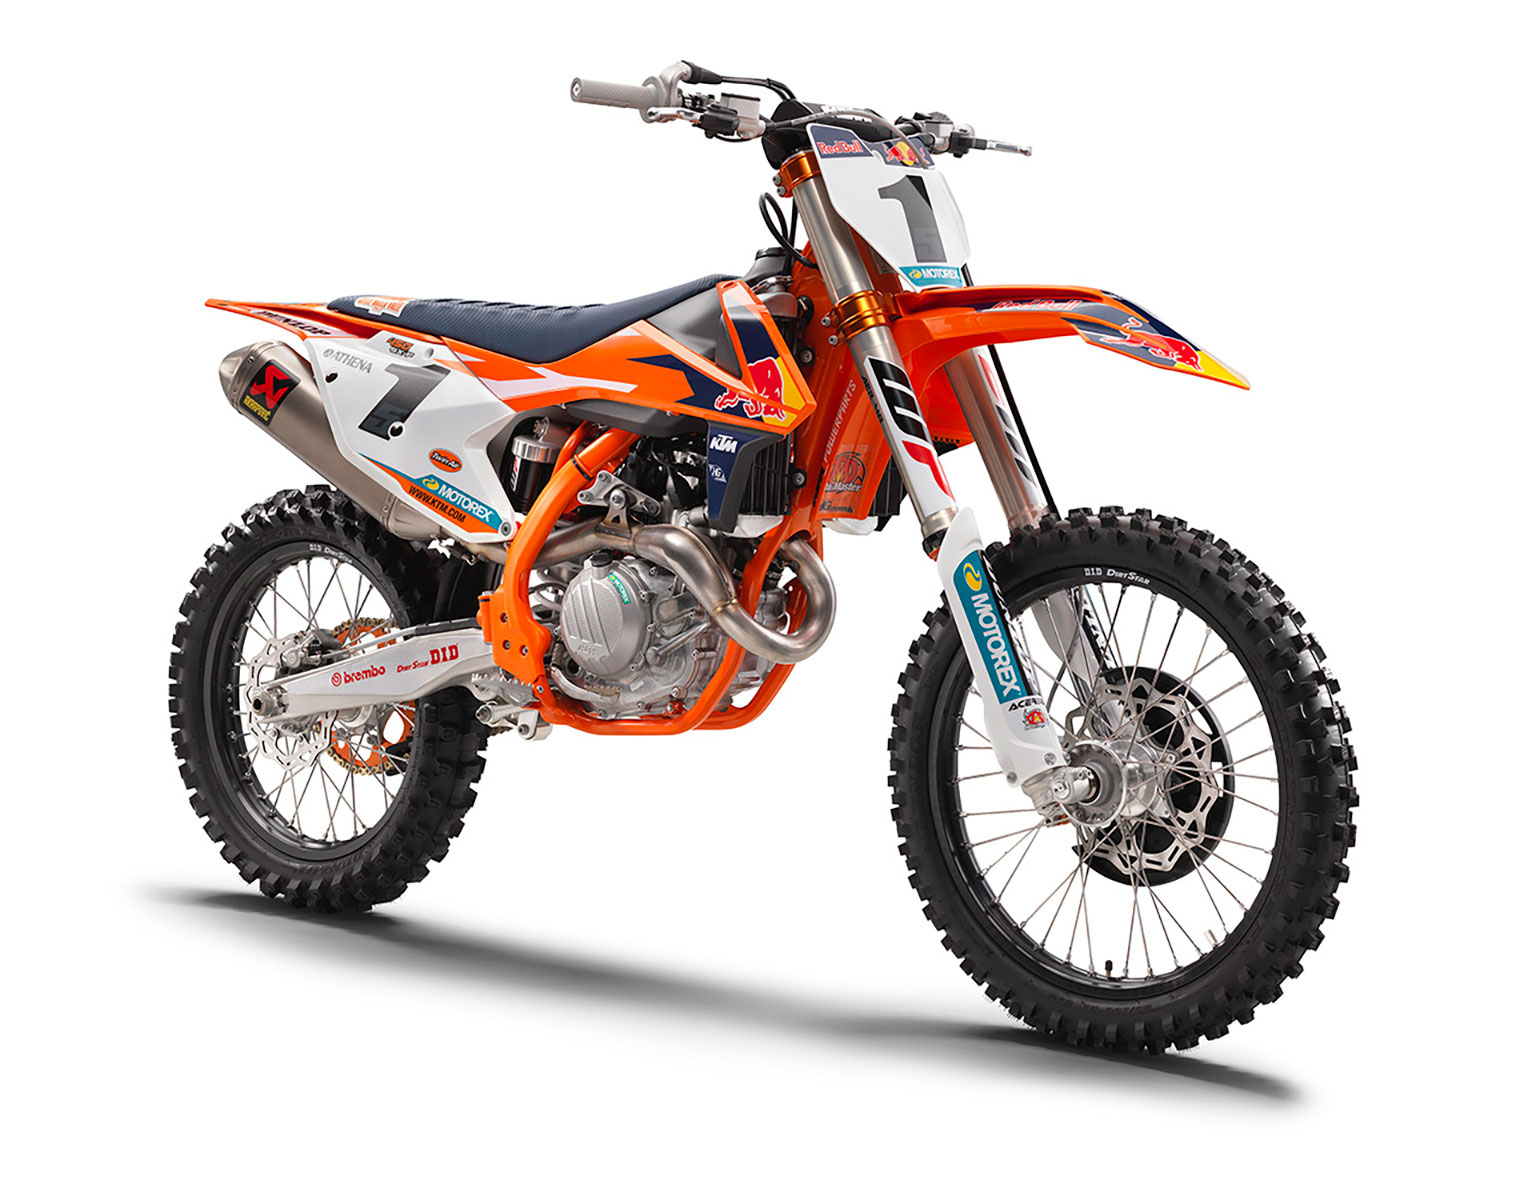 2018 ktm xcf 250. beautiful 250 ktm often reveals its latest technology just before the us supercross  season with a couple of factory edition bikes that are legal for ama racing u2013 and this  on 2018 ktm xcf 250 2